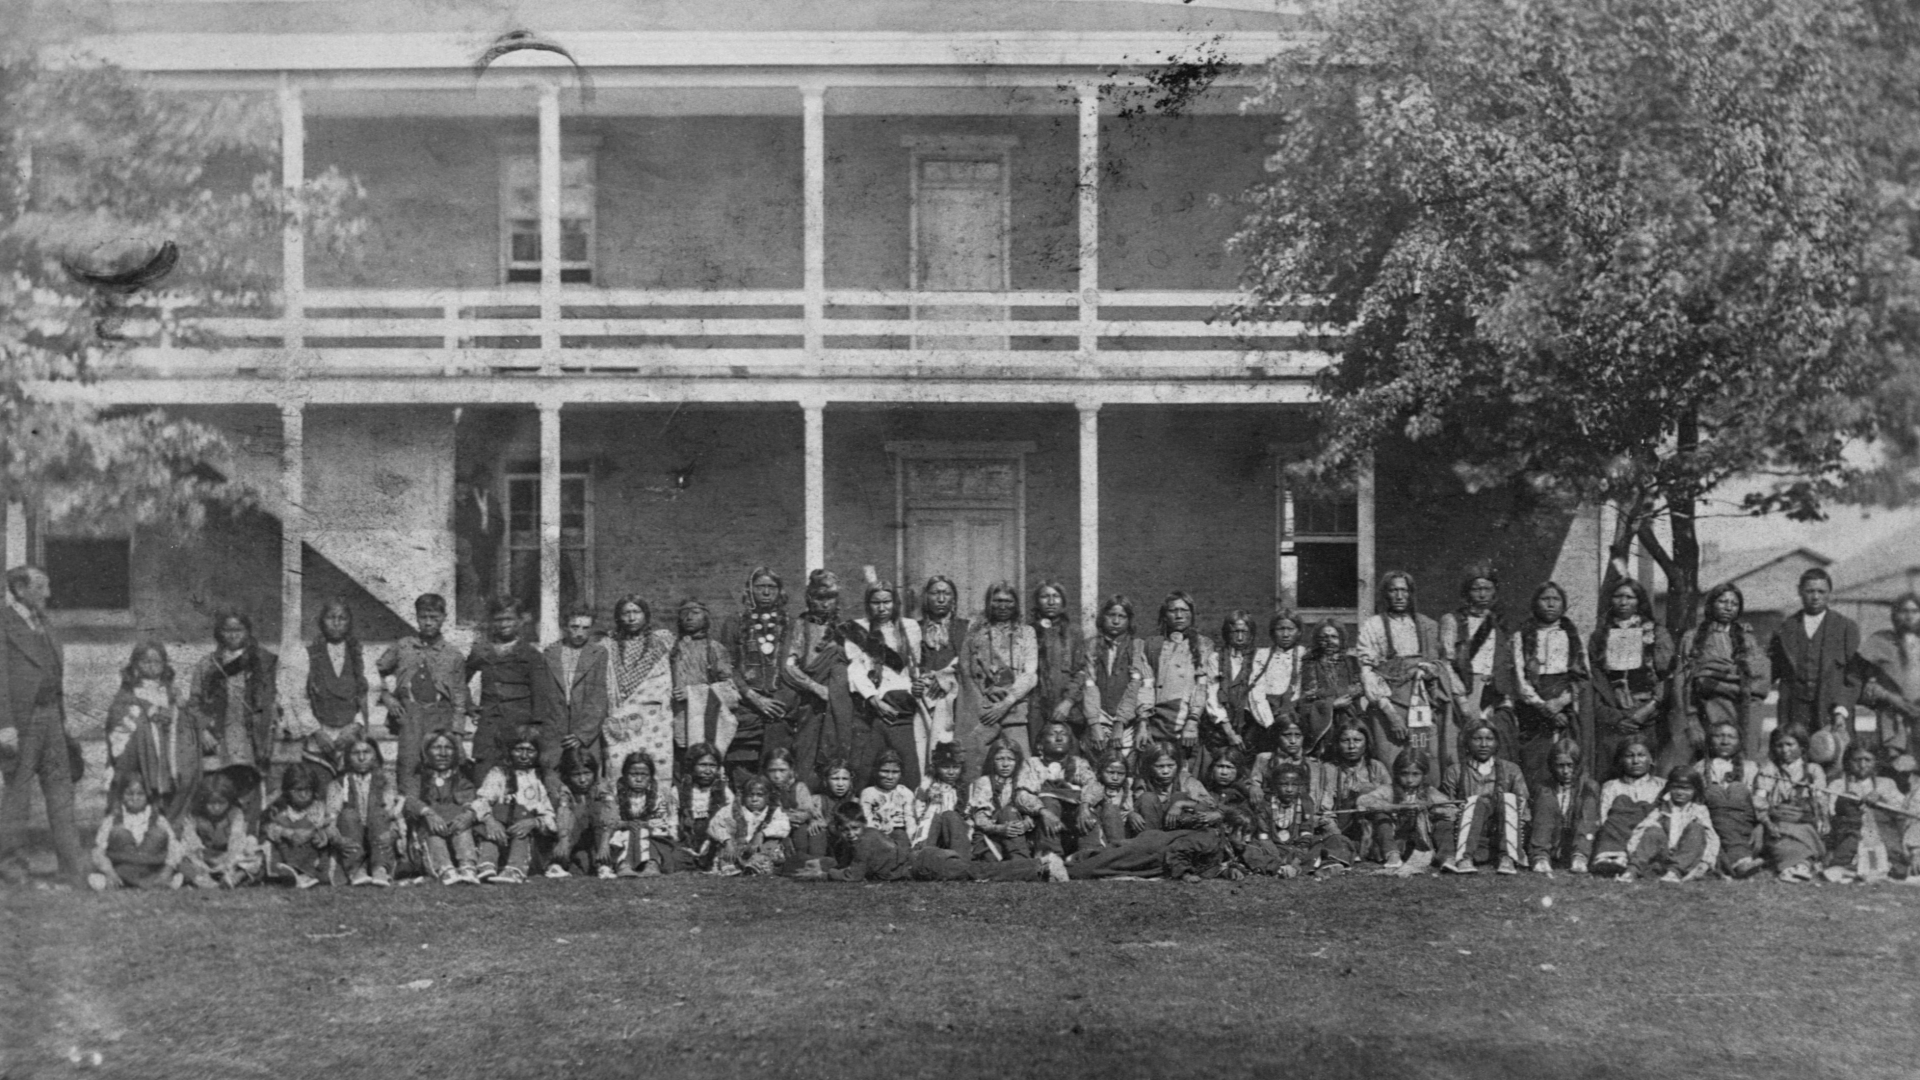 Sioux boys arrive at the Carlisle School, October 5, 1879. (Credit: Corbis/Getty Images)